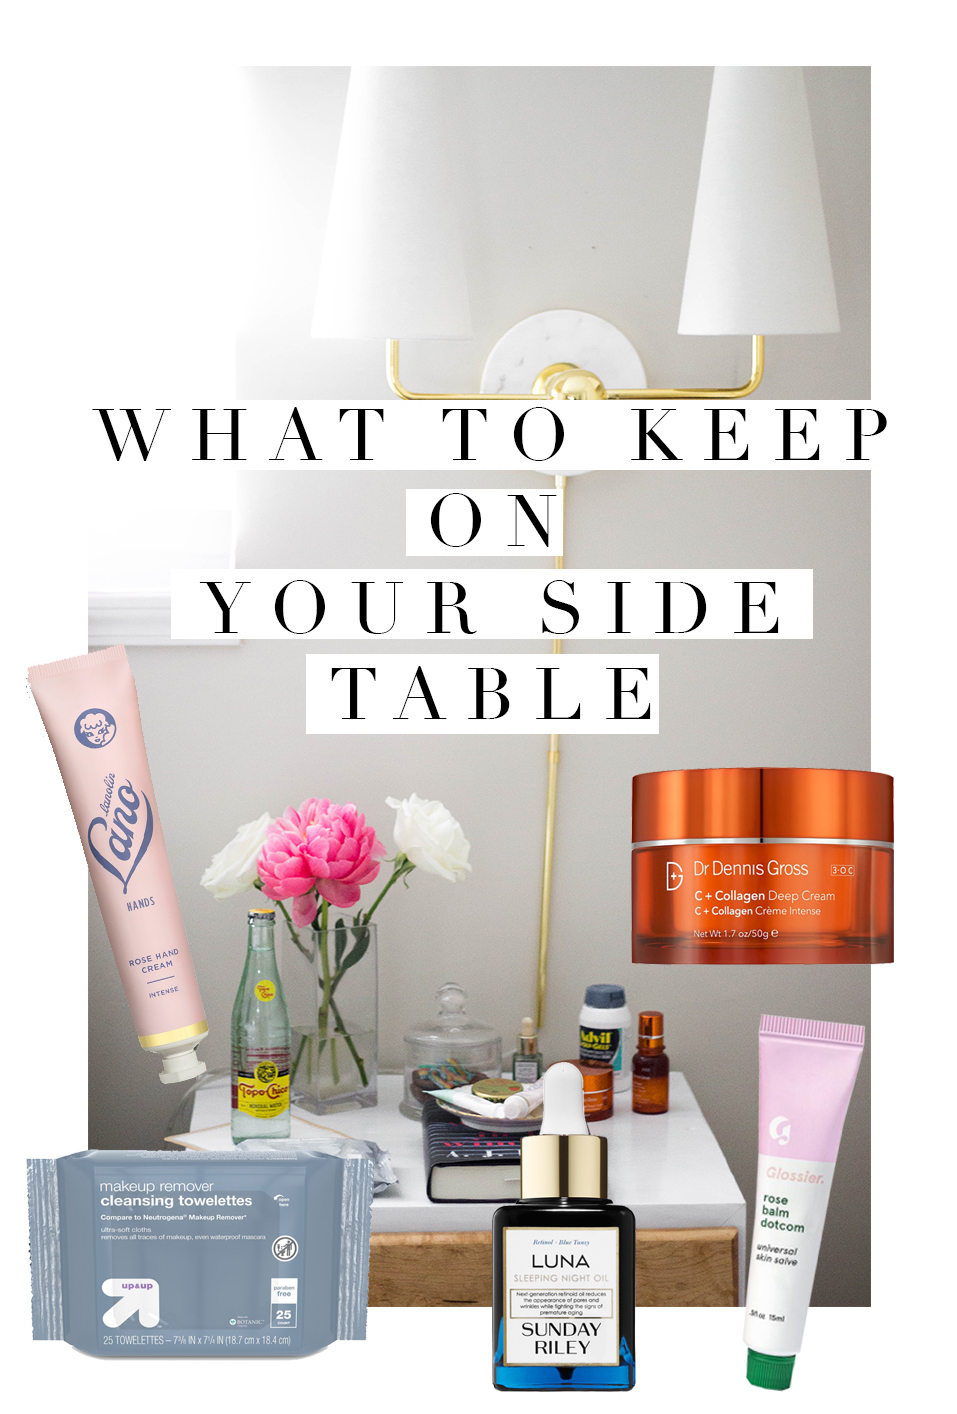 What is on your nightstand?